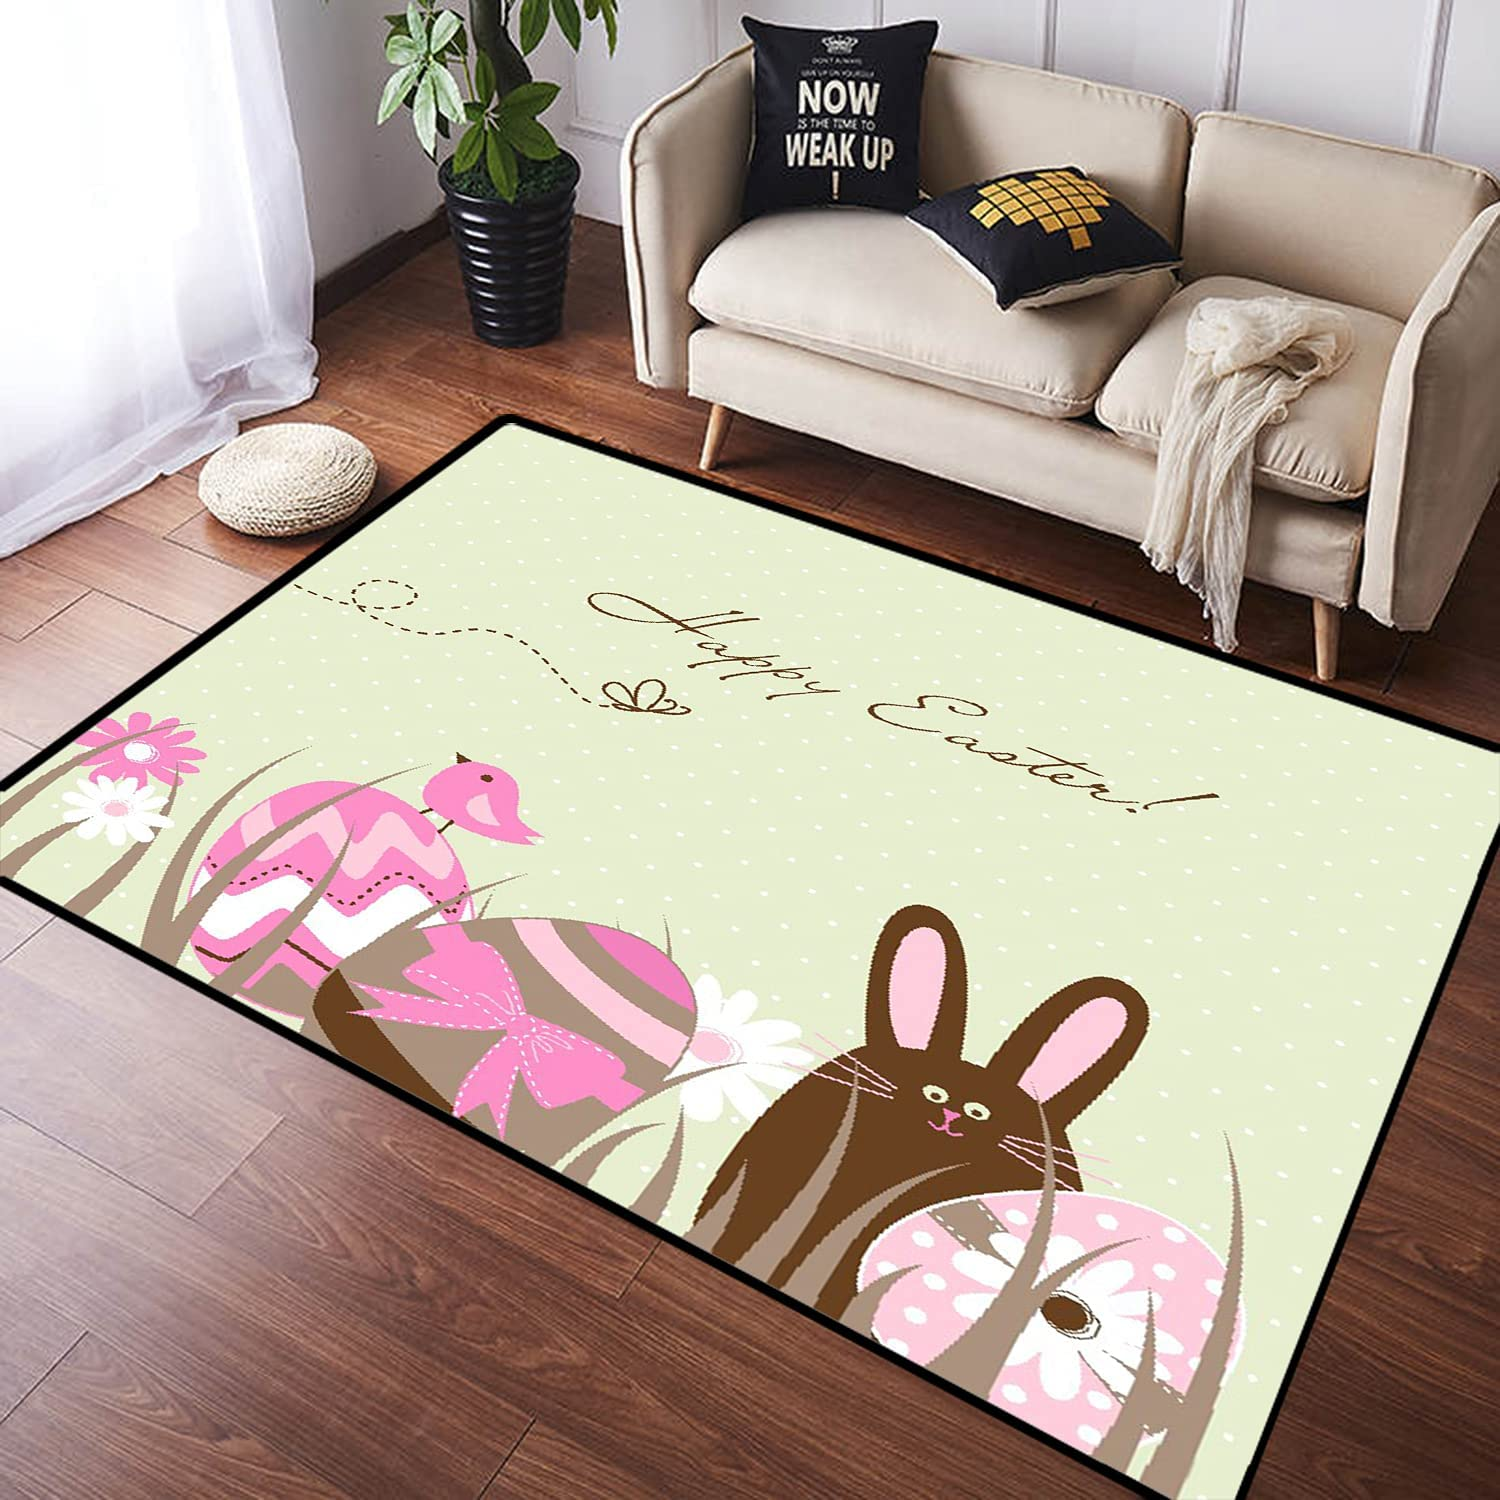 Max 61% OFF ZOMOY Long Long Beach Mall Floor Mat Carpet Easter Toned Pastel B Eggs Birds and